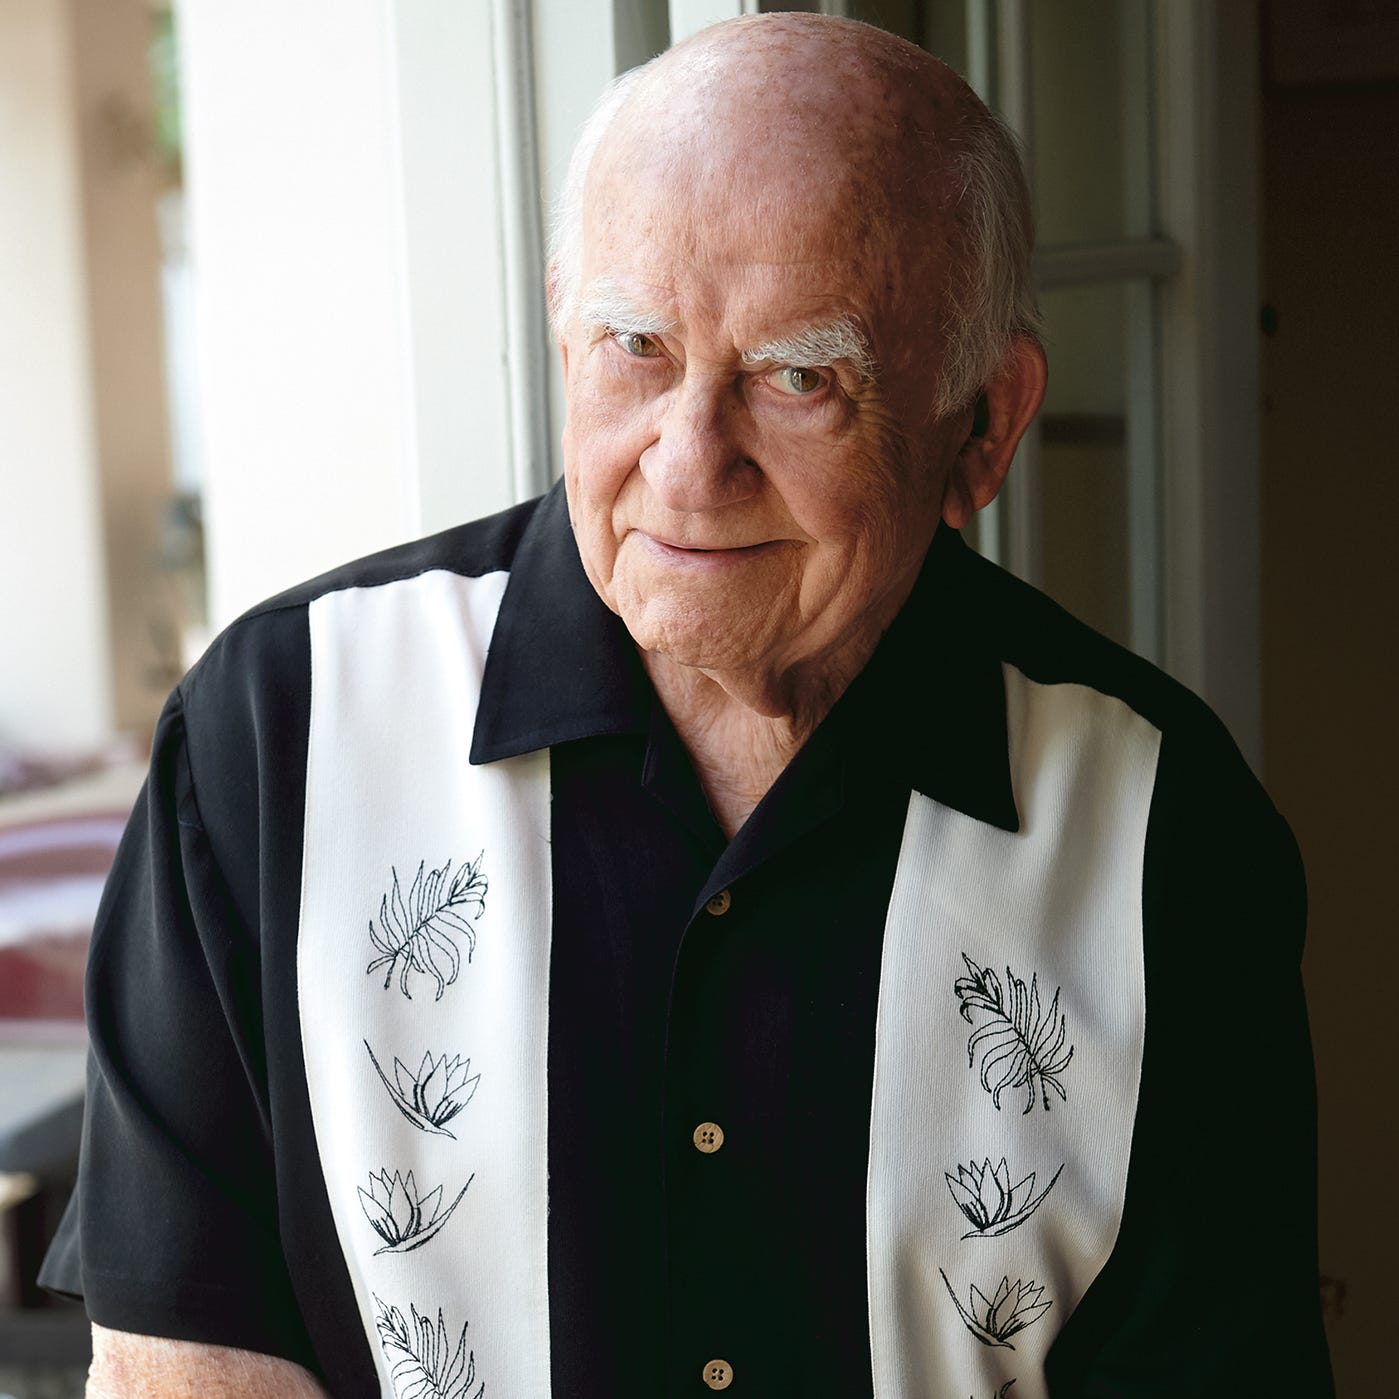 Ed Asner in Naples: Out of the newsroom, under the CAT scan